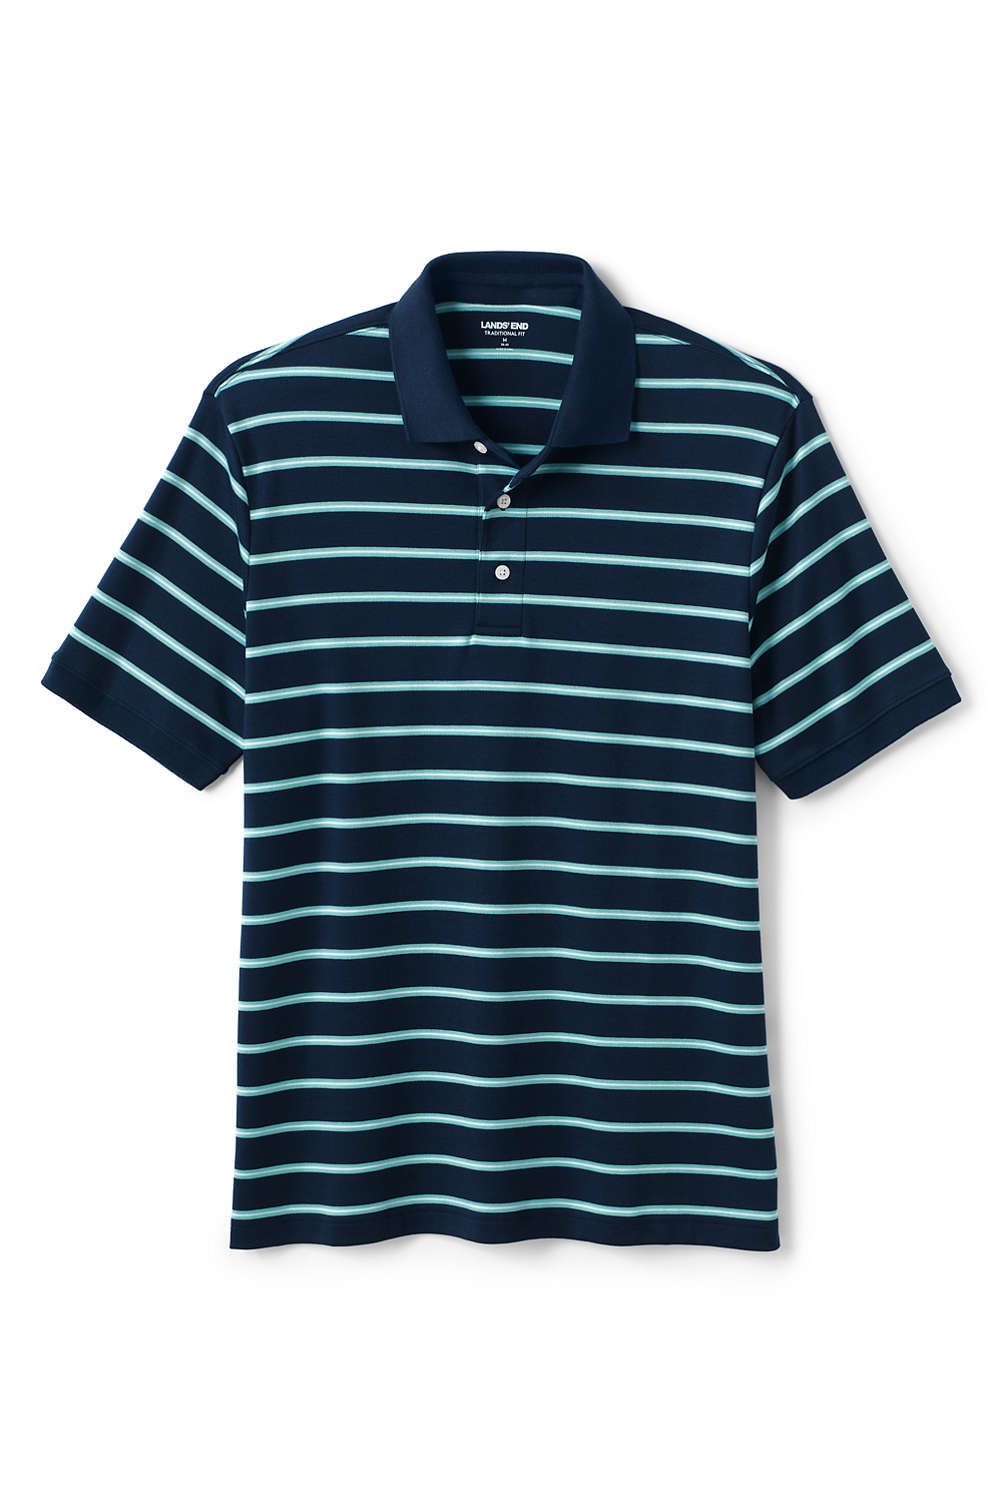 5c0ca879f61 Men s Short Sleeve Striped Supima Polo from Lands  End